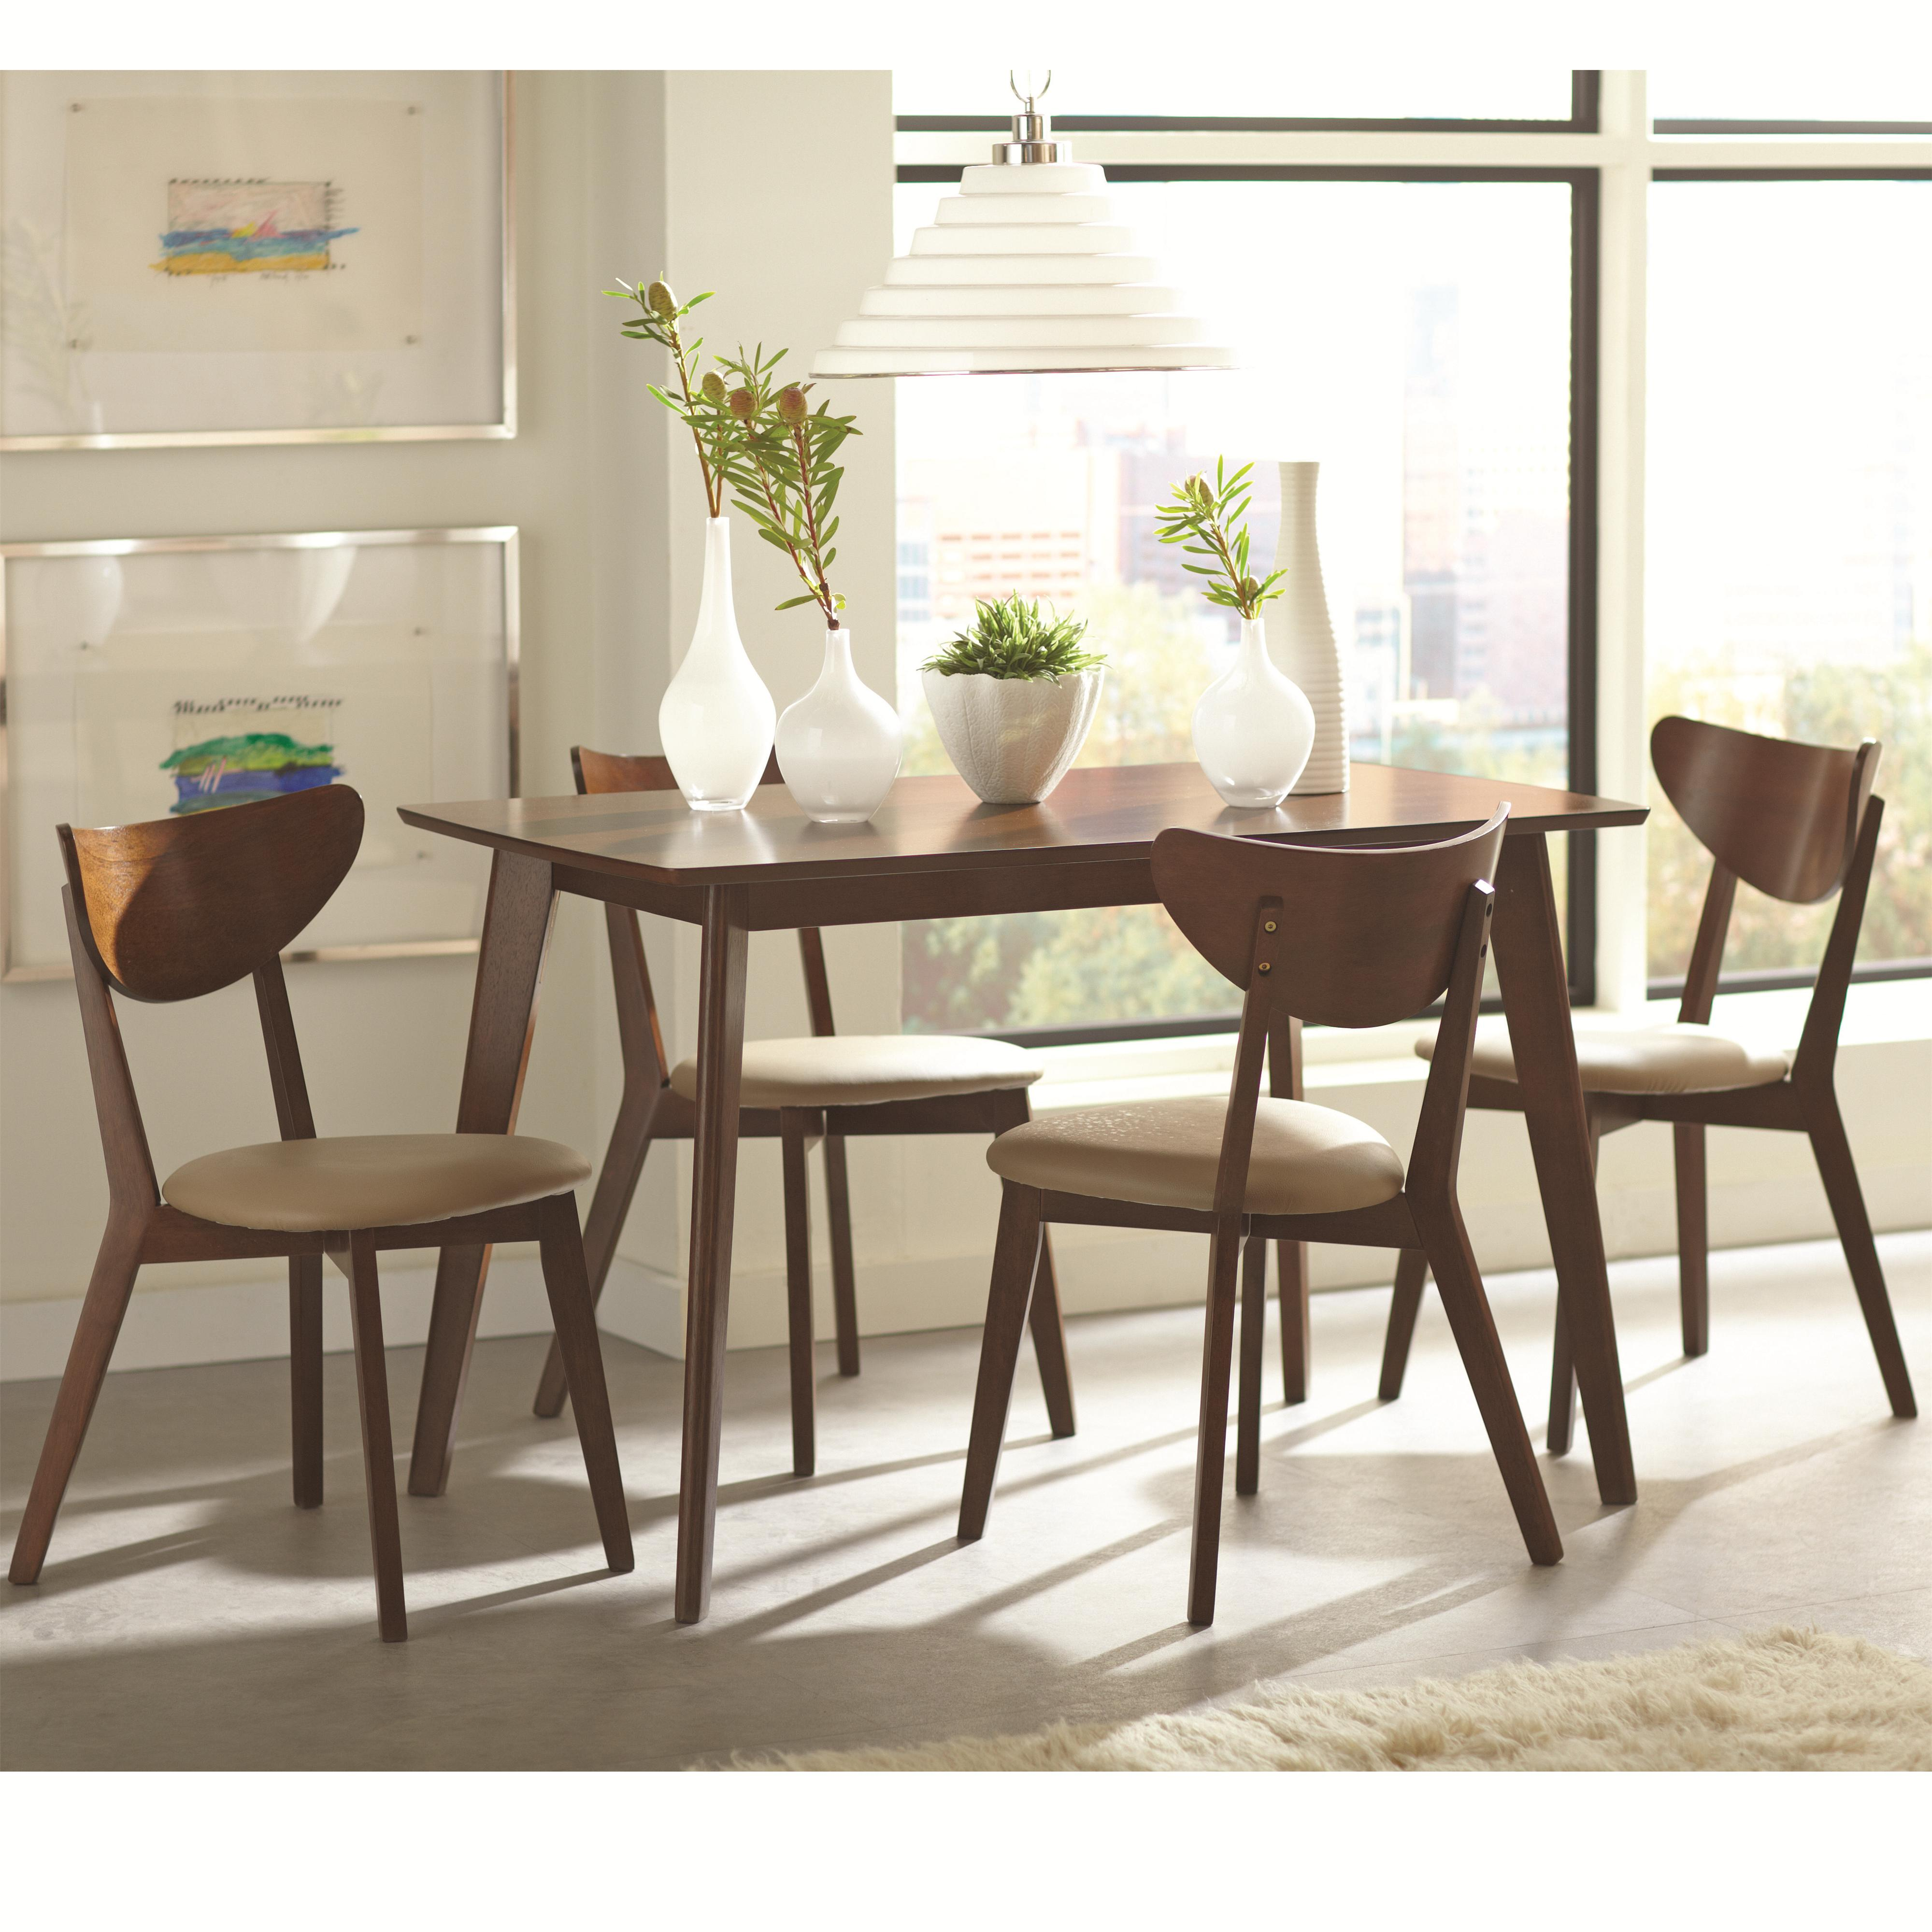 retro dining room table and chairs godrej revolving chair catalogue kaia 5 piece set with angled legs rotmans sets